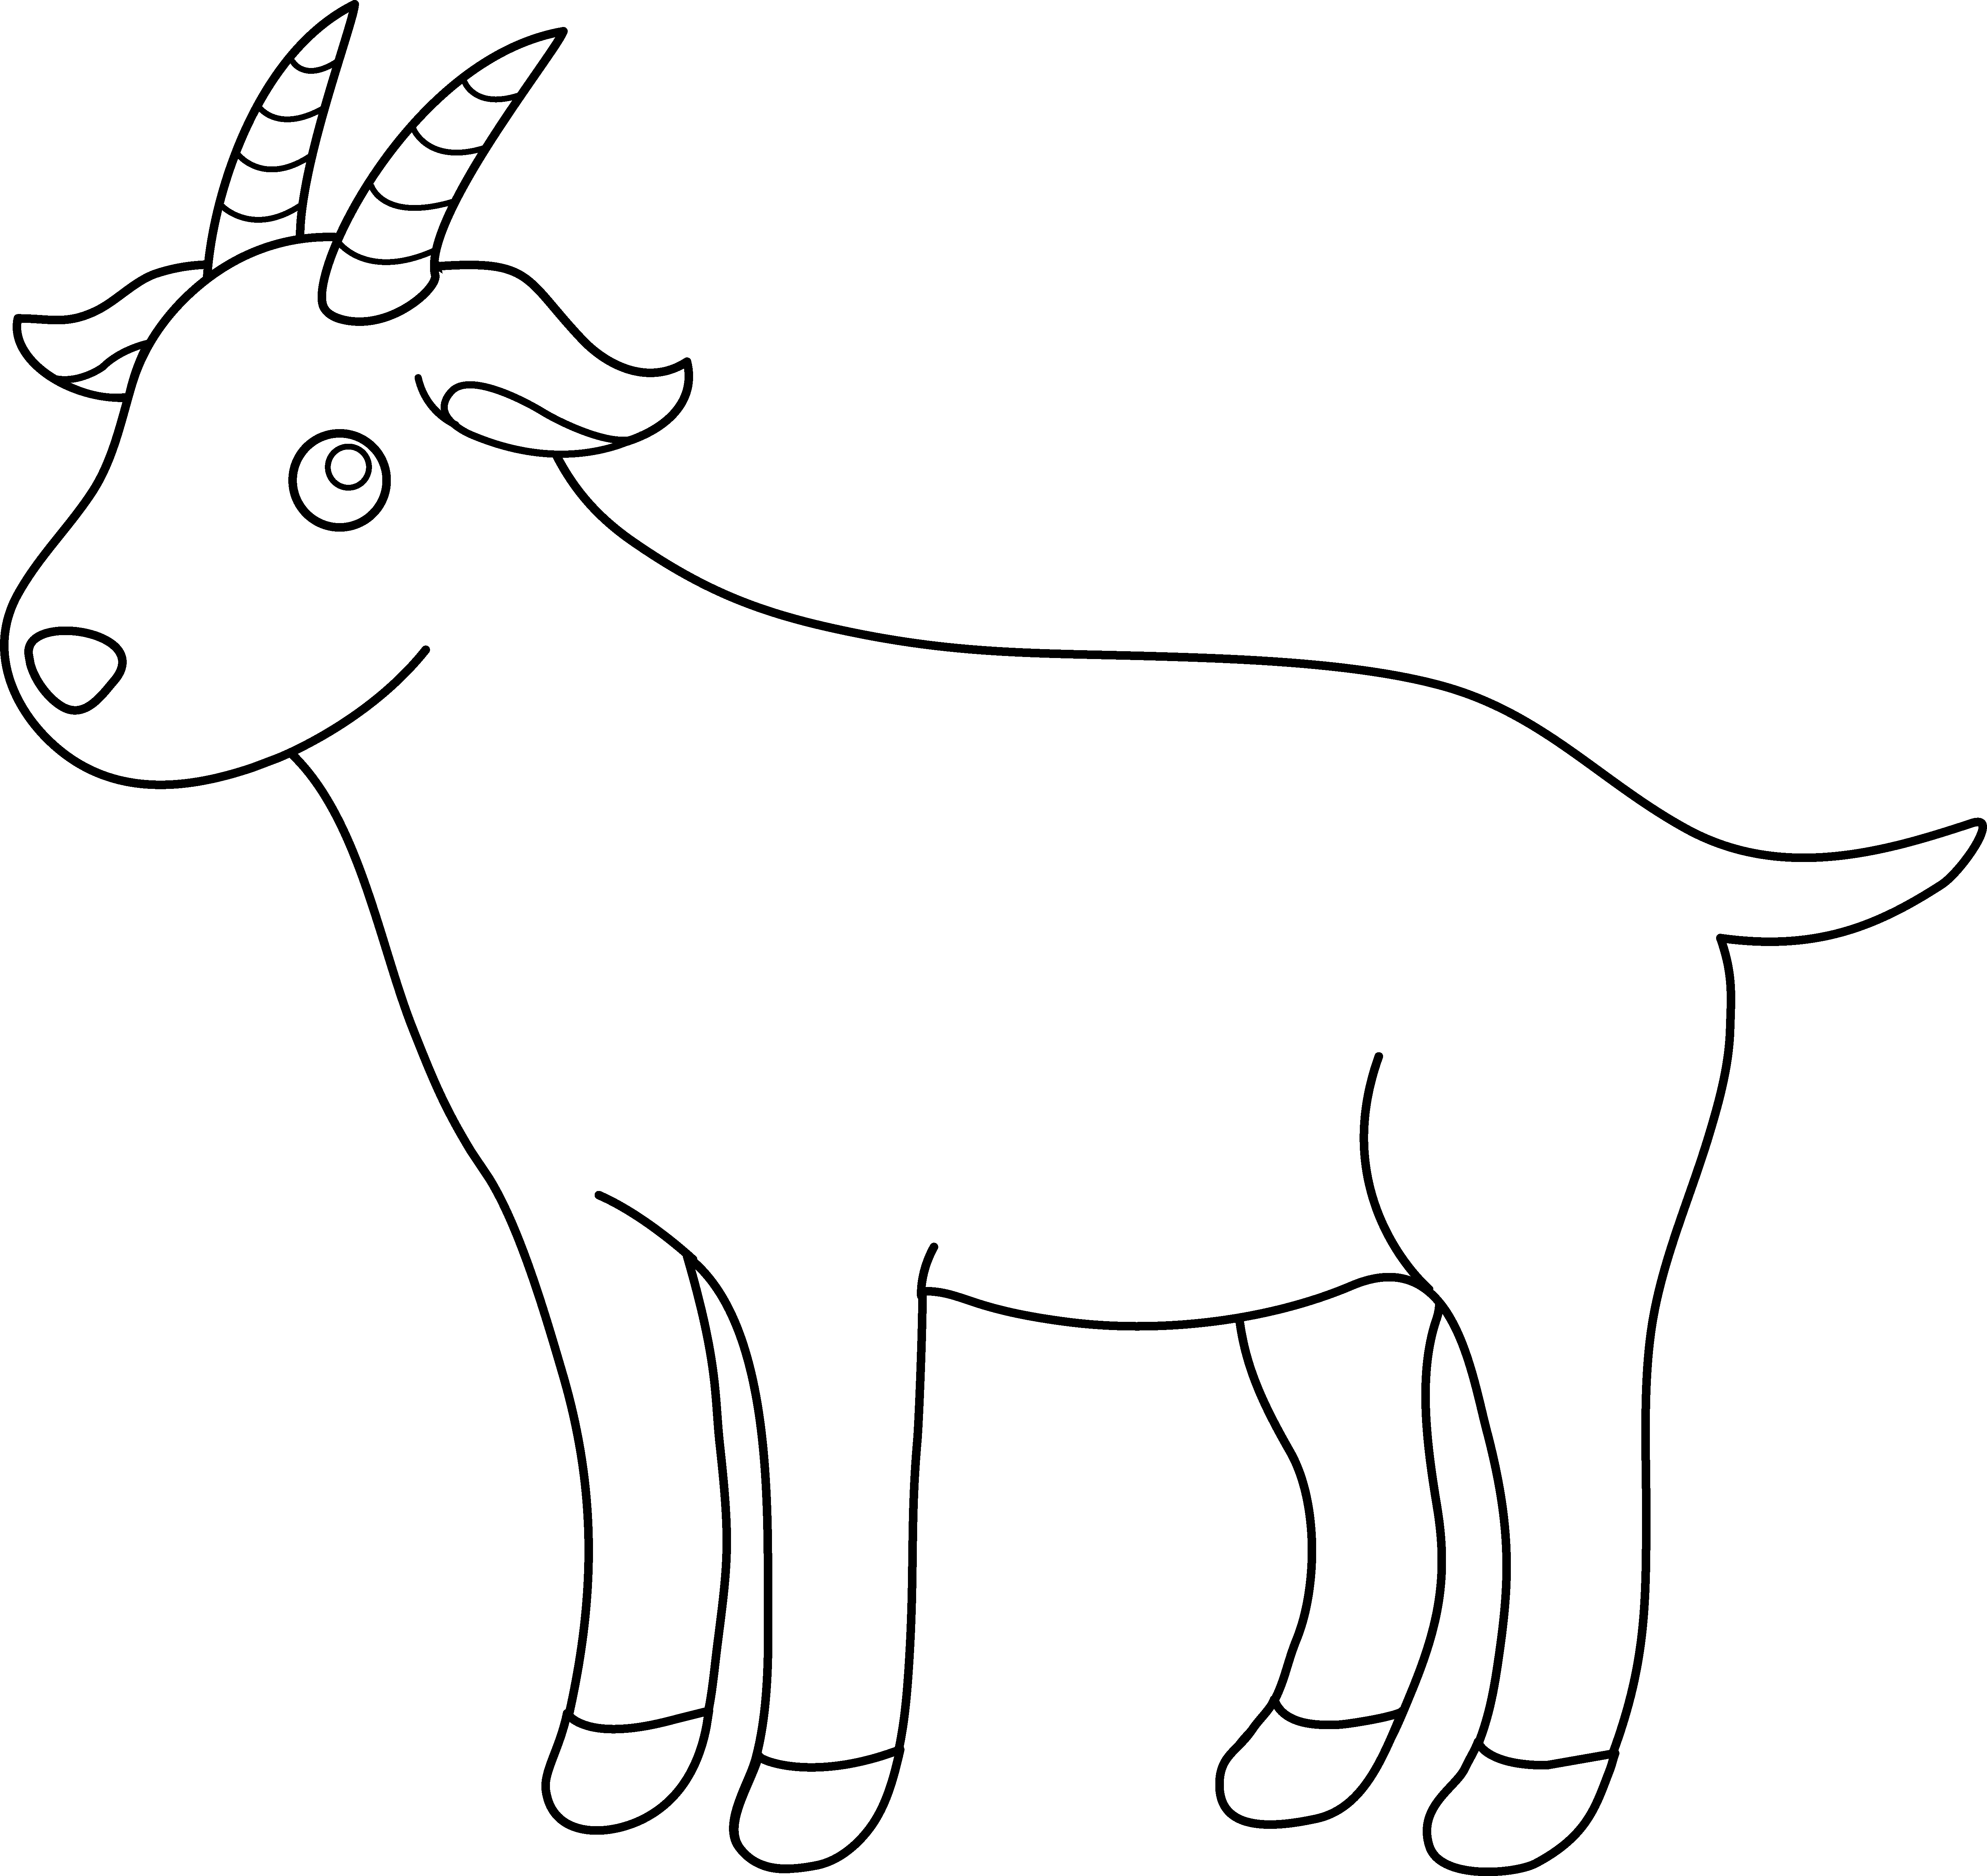 clip art transparent library Middle free on dumielauxepices. Goat clipart simple